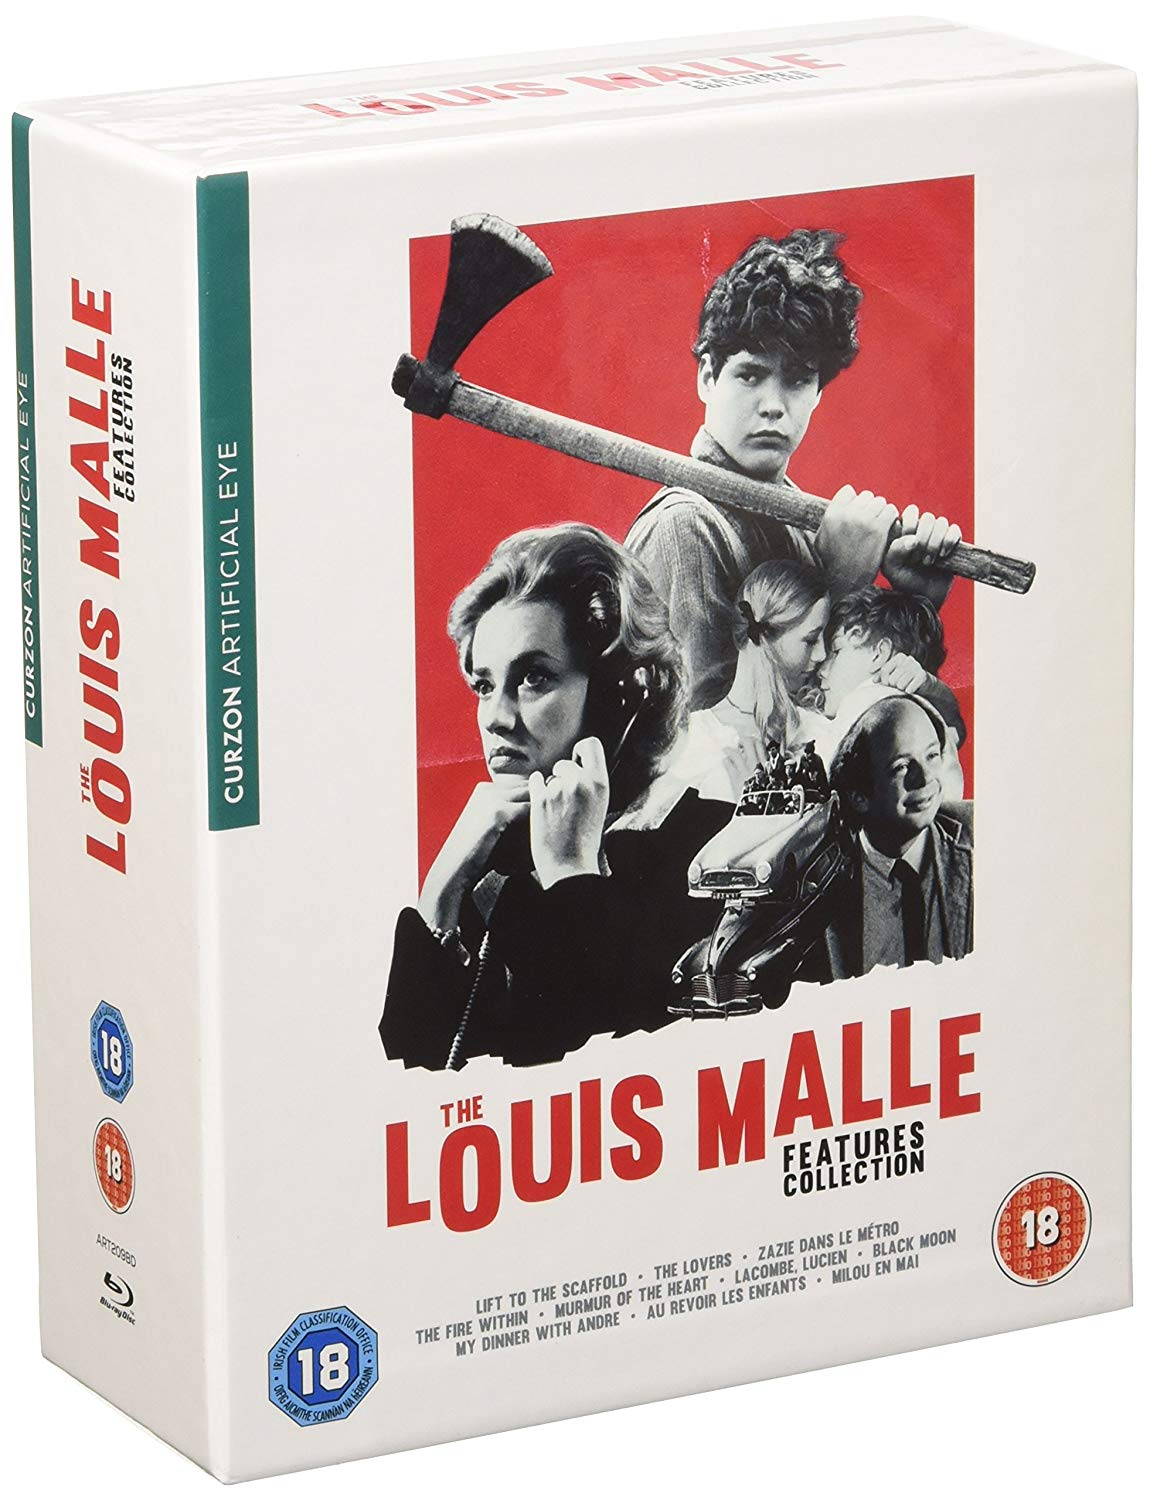 Buy The Louis Malle Features Collection (Blu-ray Box Set)